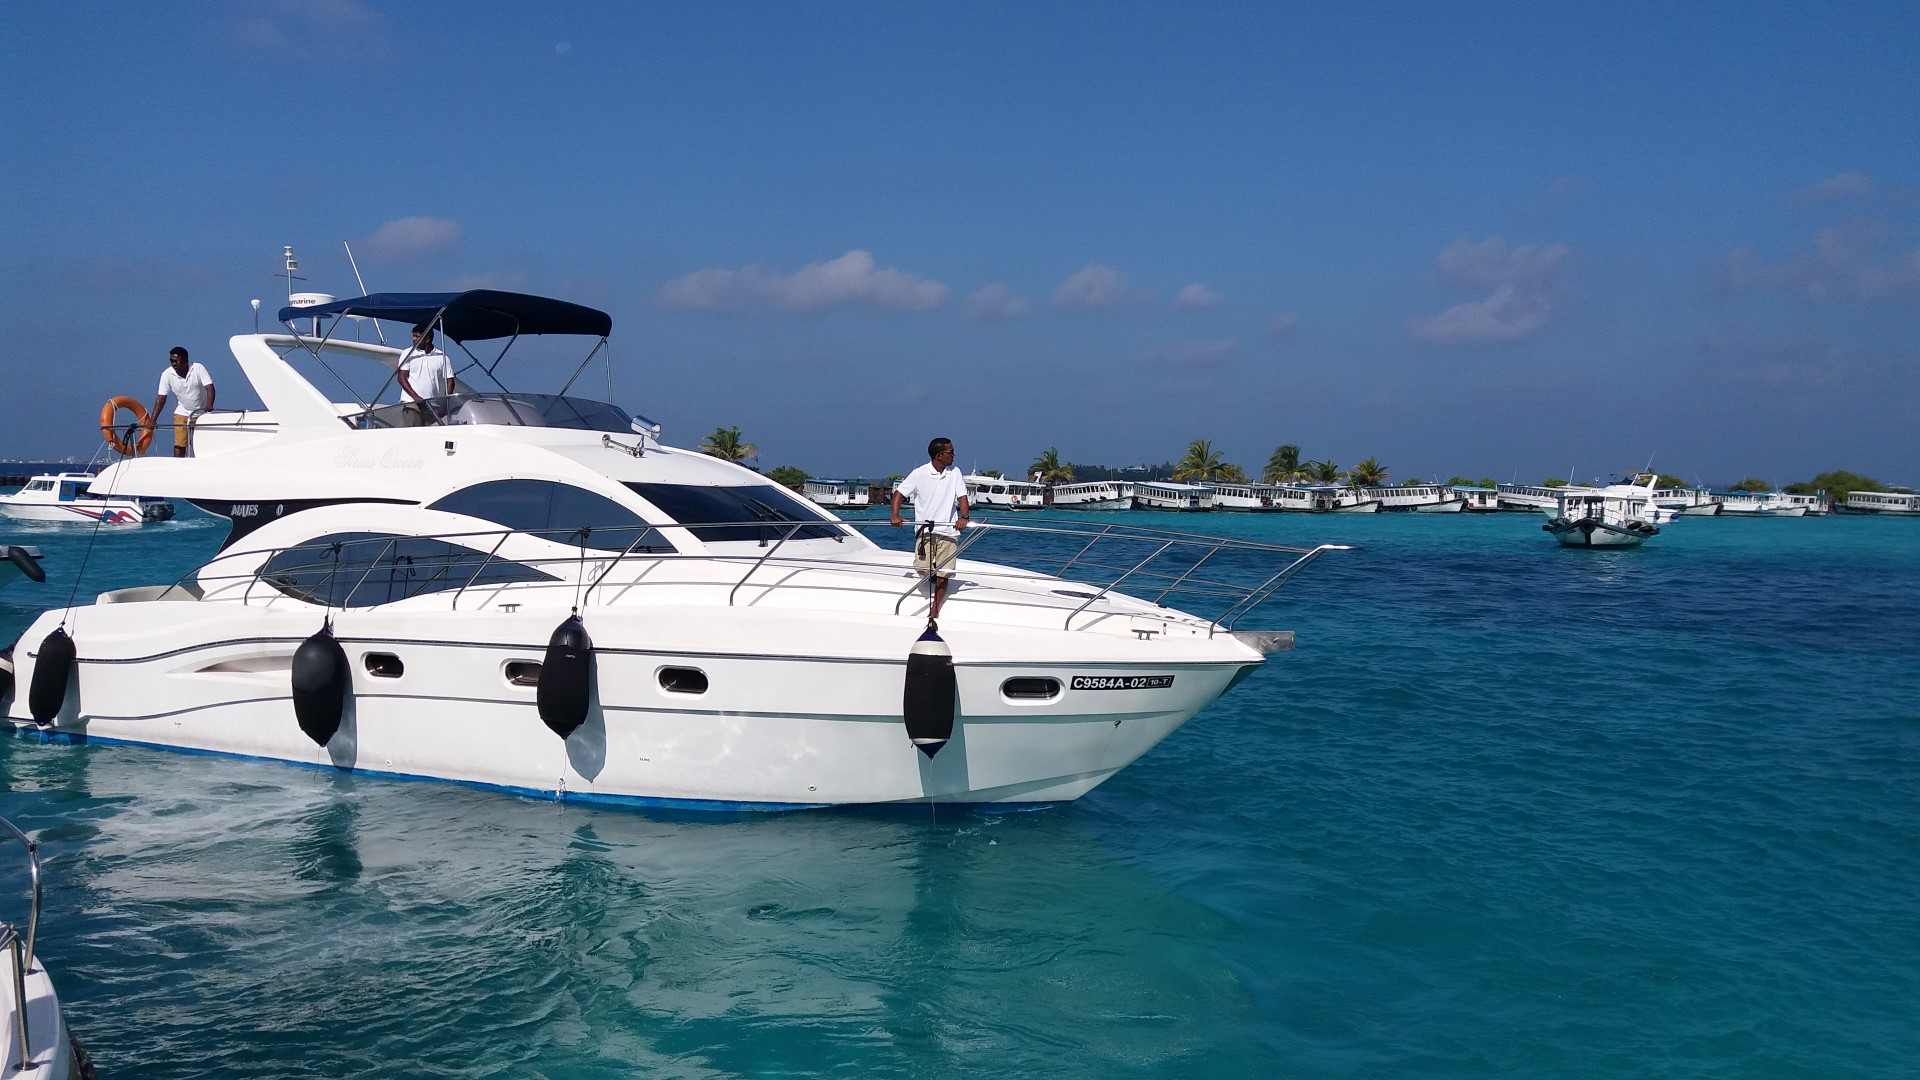 maldives yachts (6) (Large).jpg